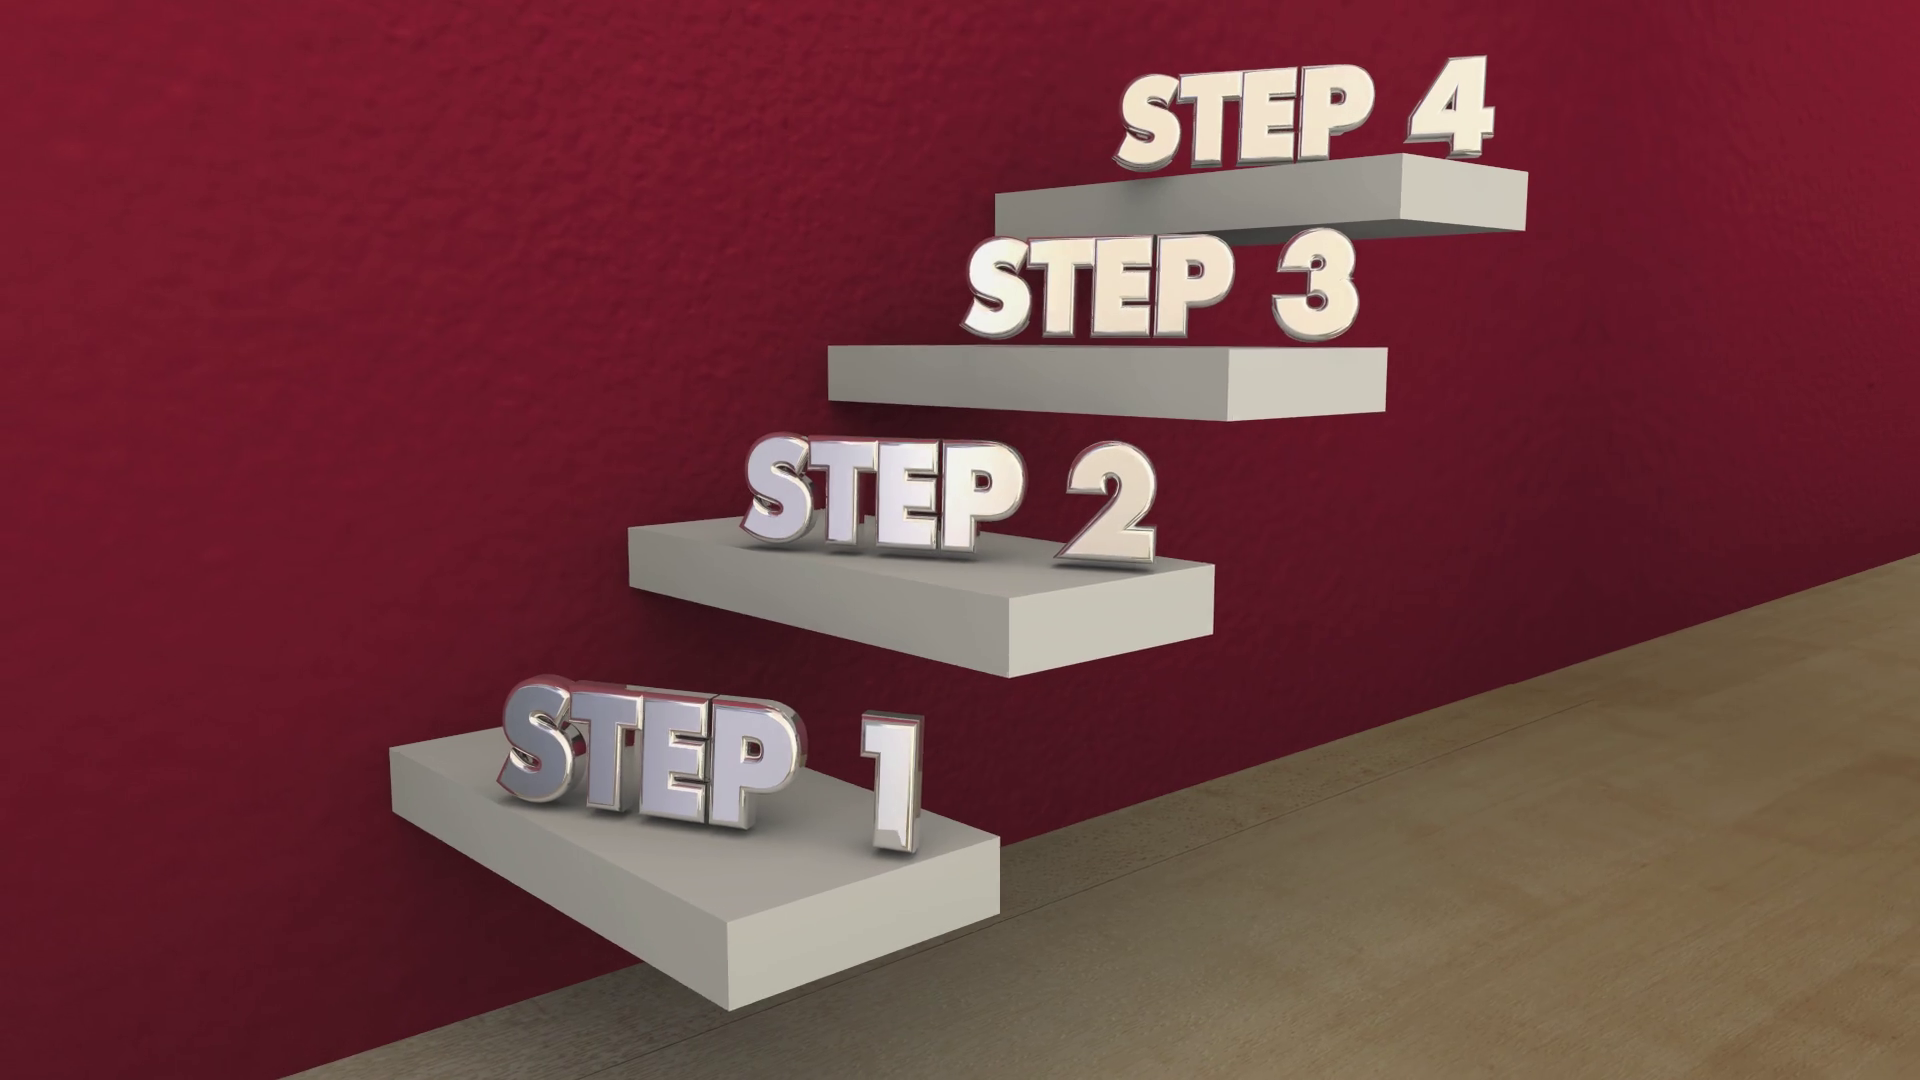 Steps 1 to 4 One Four Process Stairs 3d Animation Motion Background -  Storyblocks